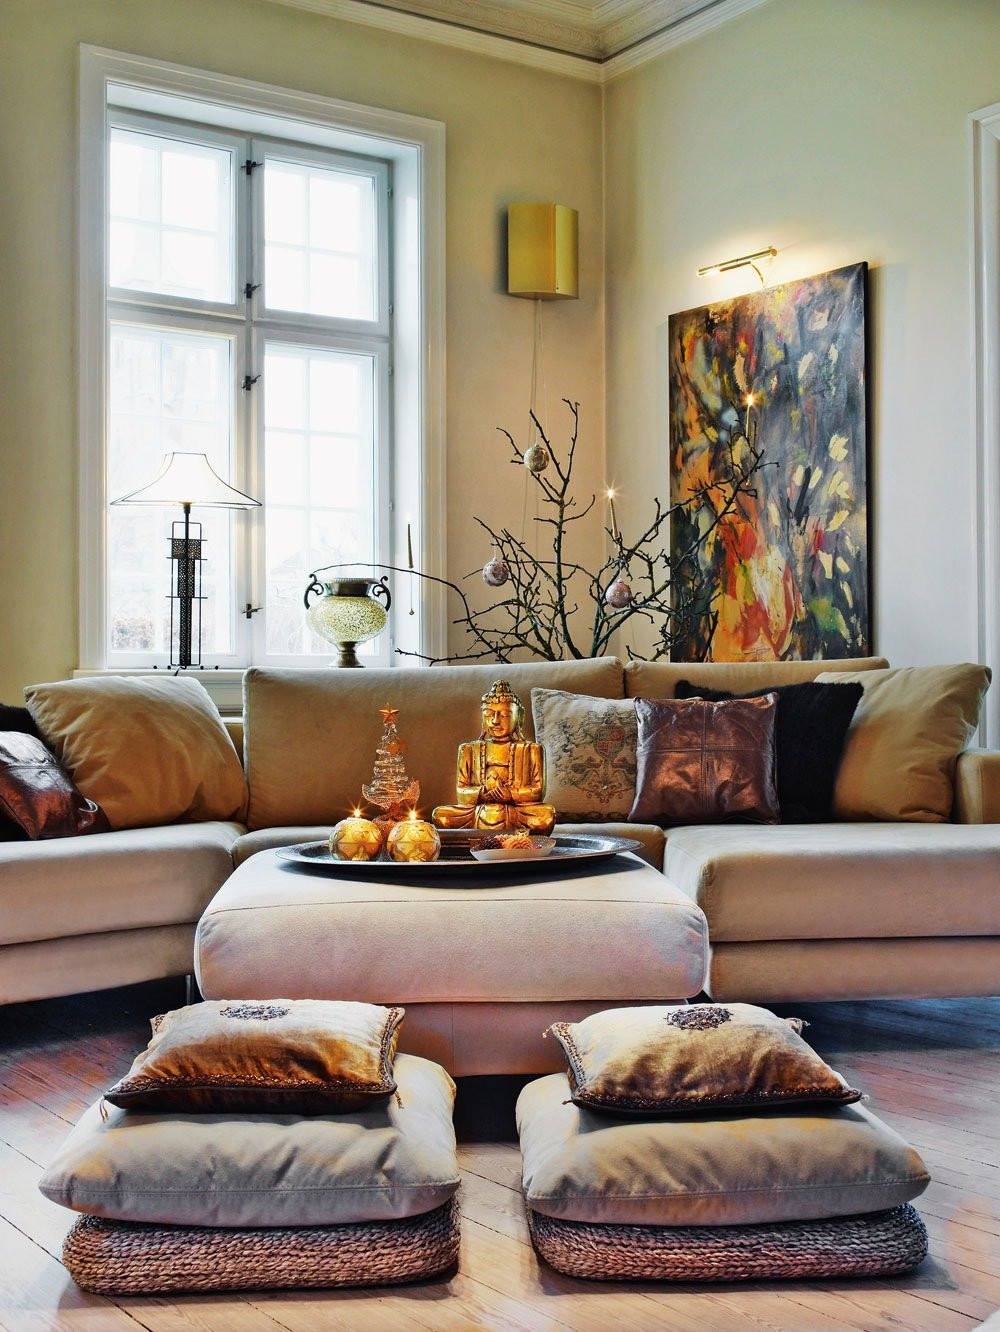 Best ideas about Zen Living Room . Save or Pin Zen Space 20 Beautiful Meditation Room Design Ideas Now.